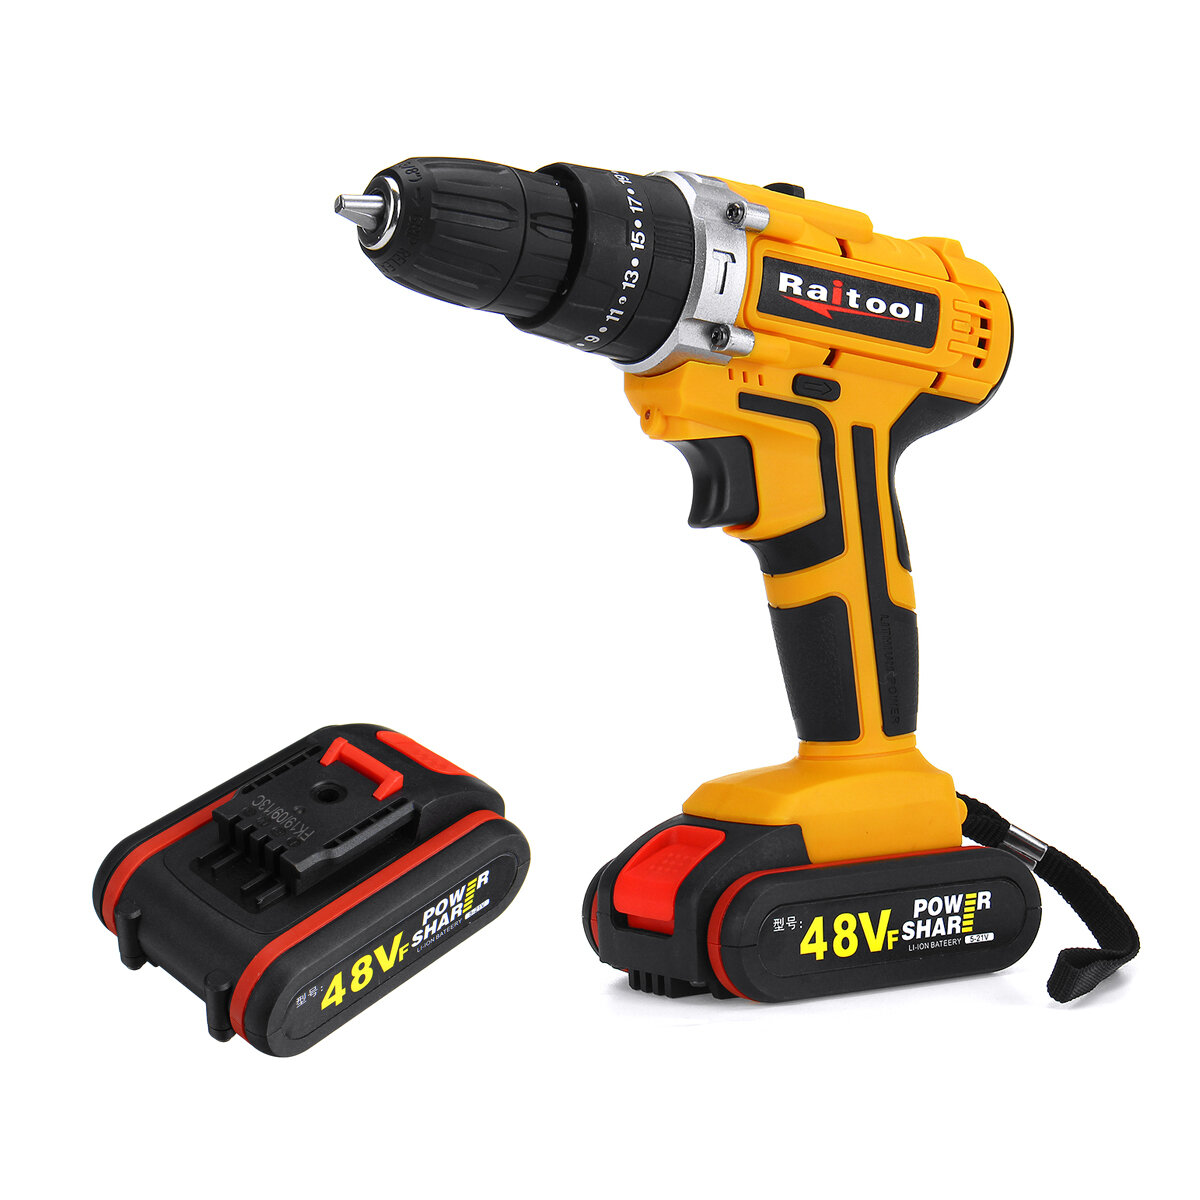 Raitool 48VF Cordless Electric Impact Drill Just $28.99!